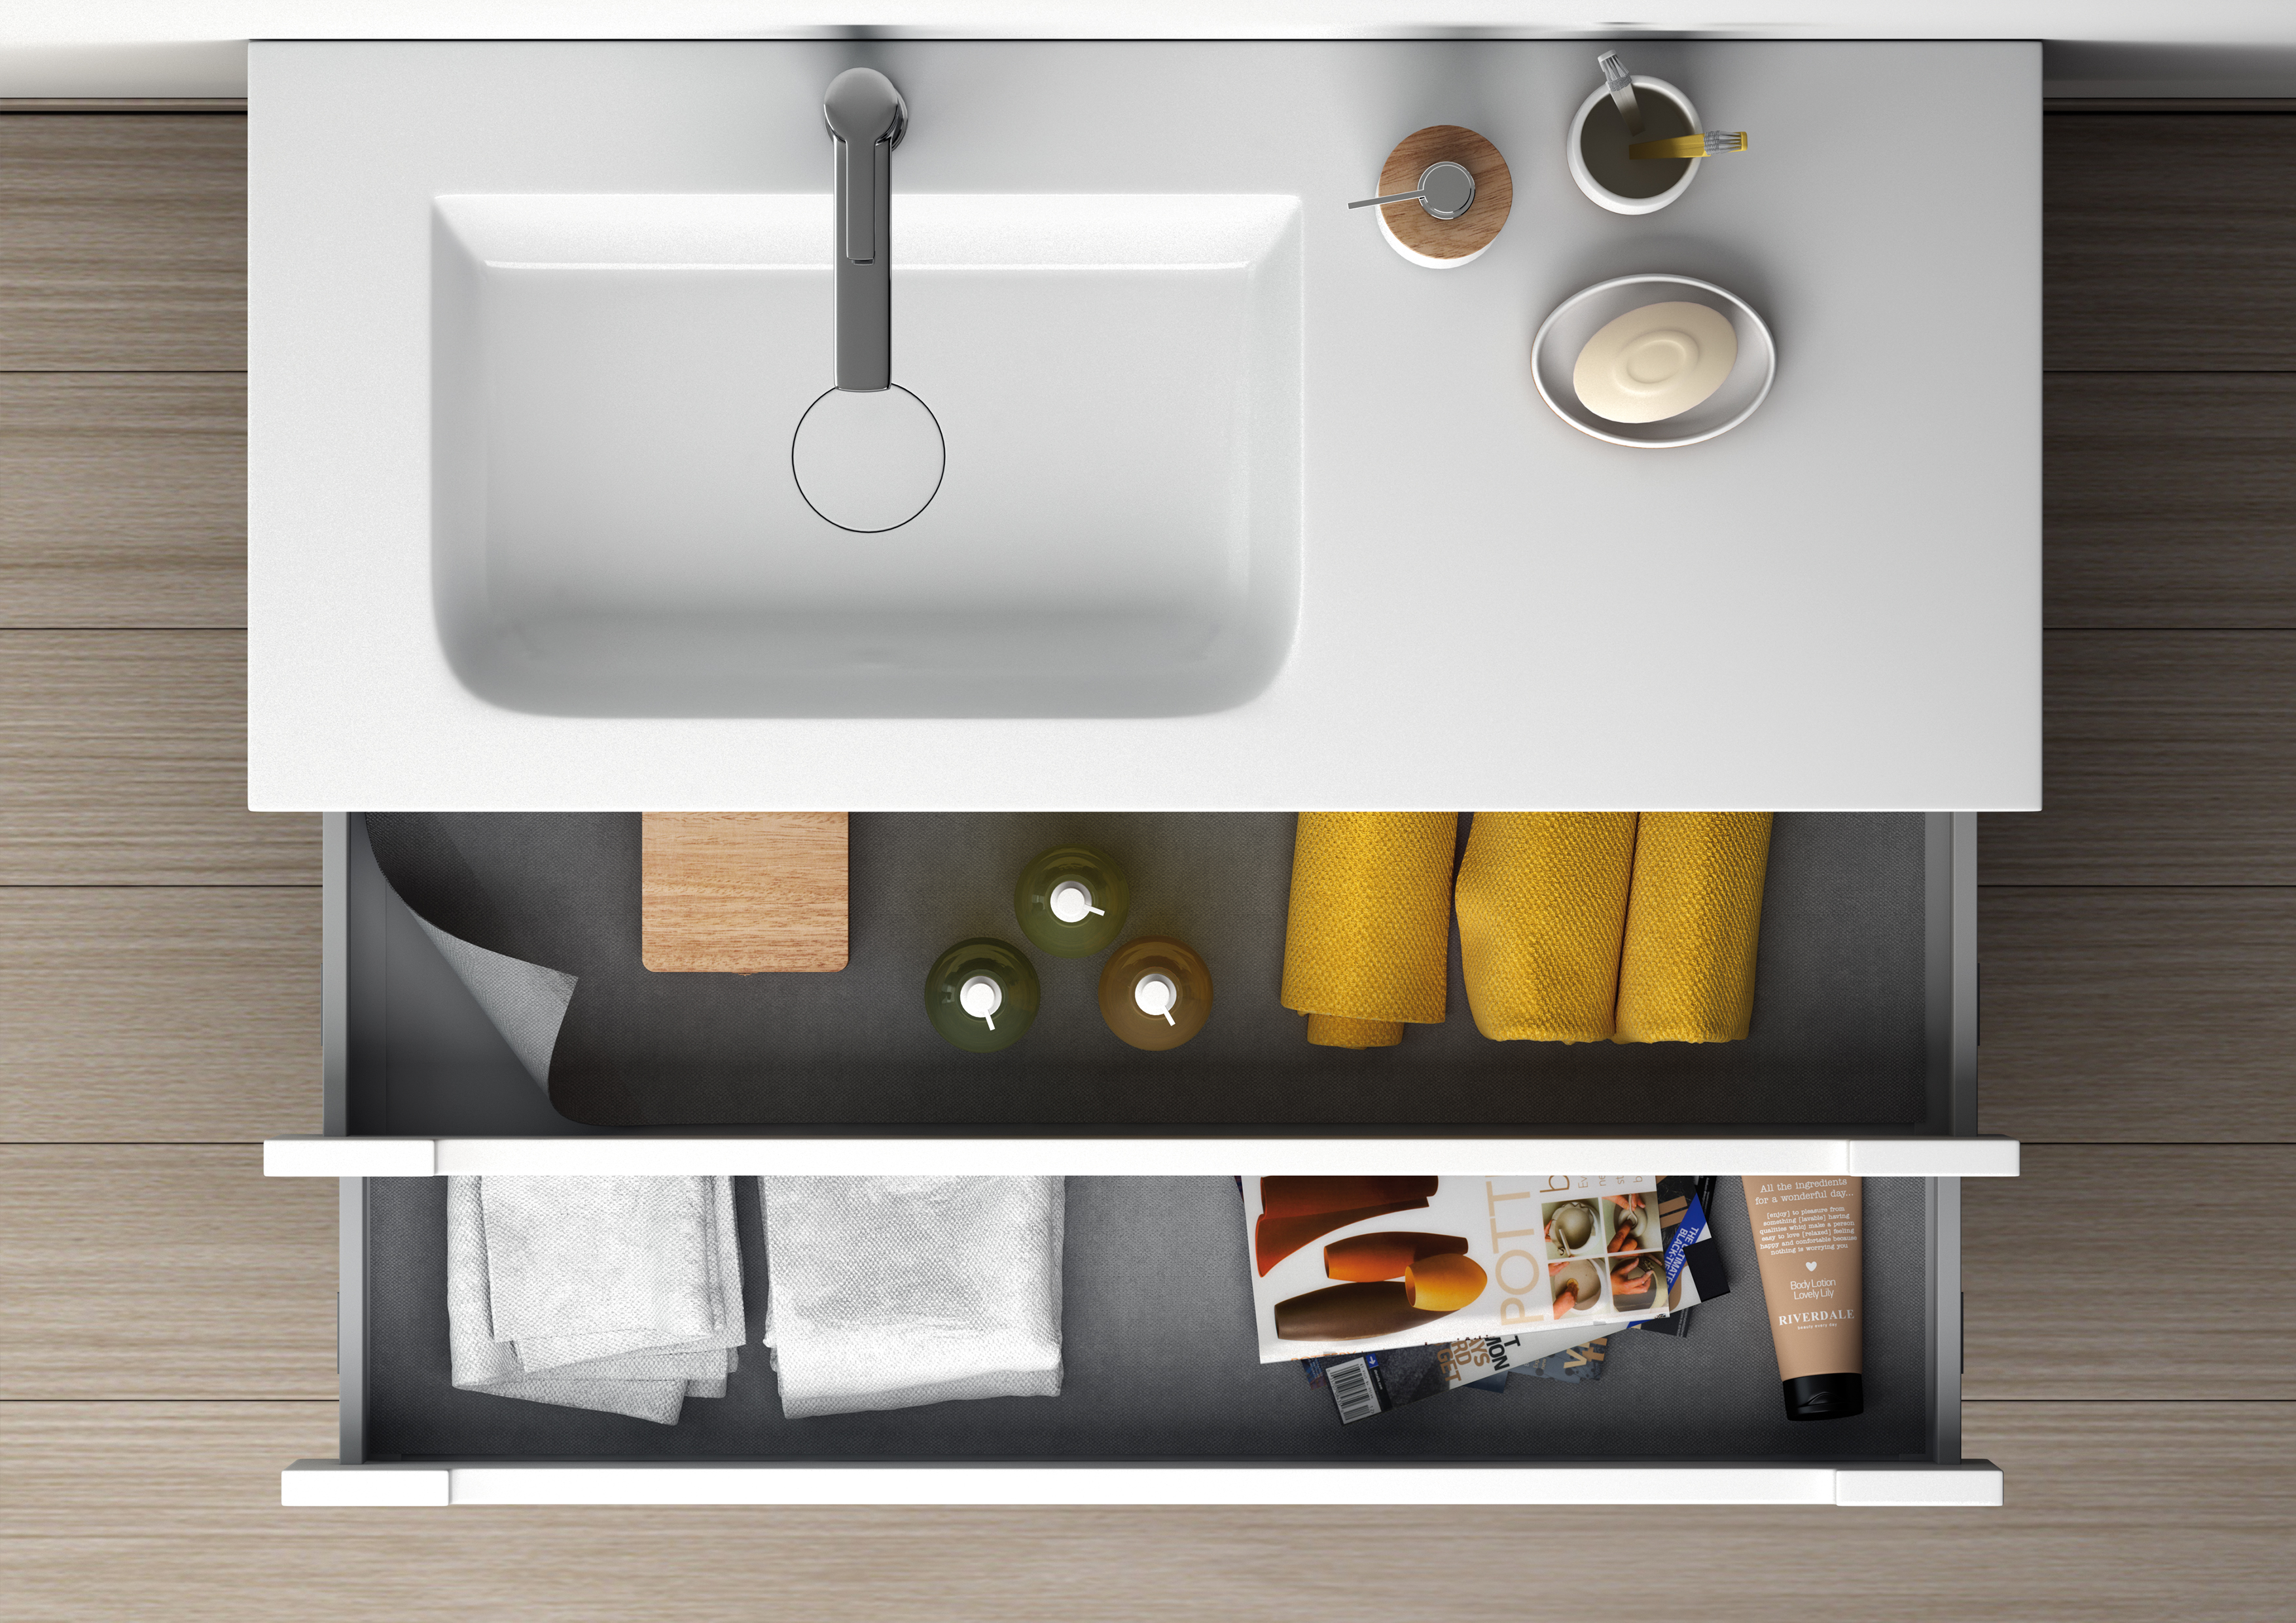 bathroom fittings why are they important. Emuca, A Benchmark In The Furniture Fittings Sector, Has Presented Important New Products Aimed At Furniture, Carpentry, Hardware And DIY Sectors. Bathroom Why Are They